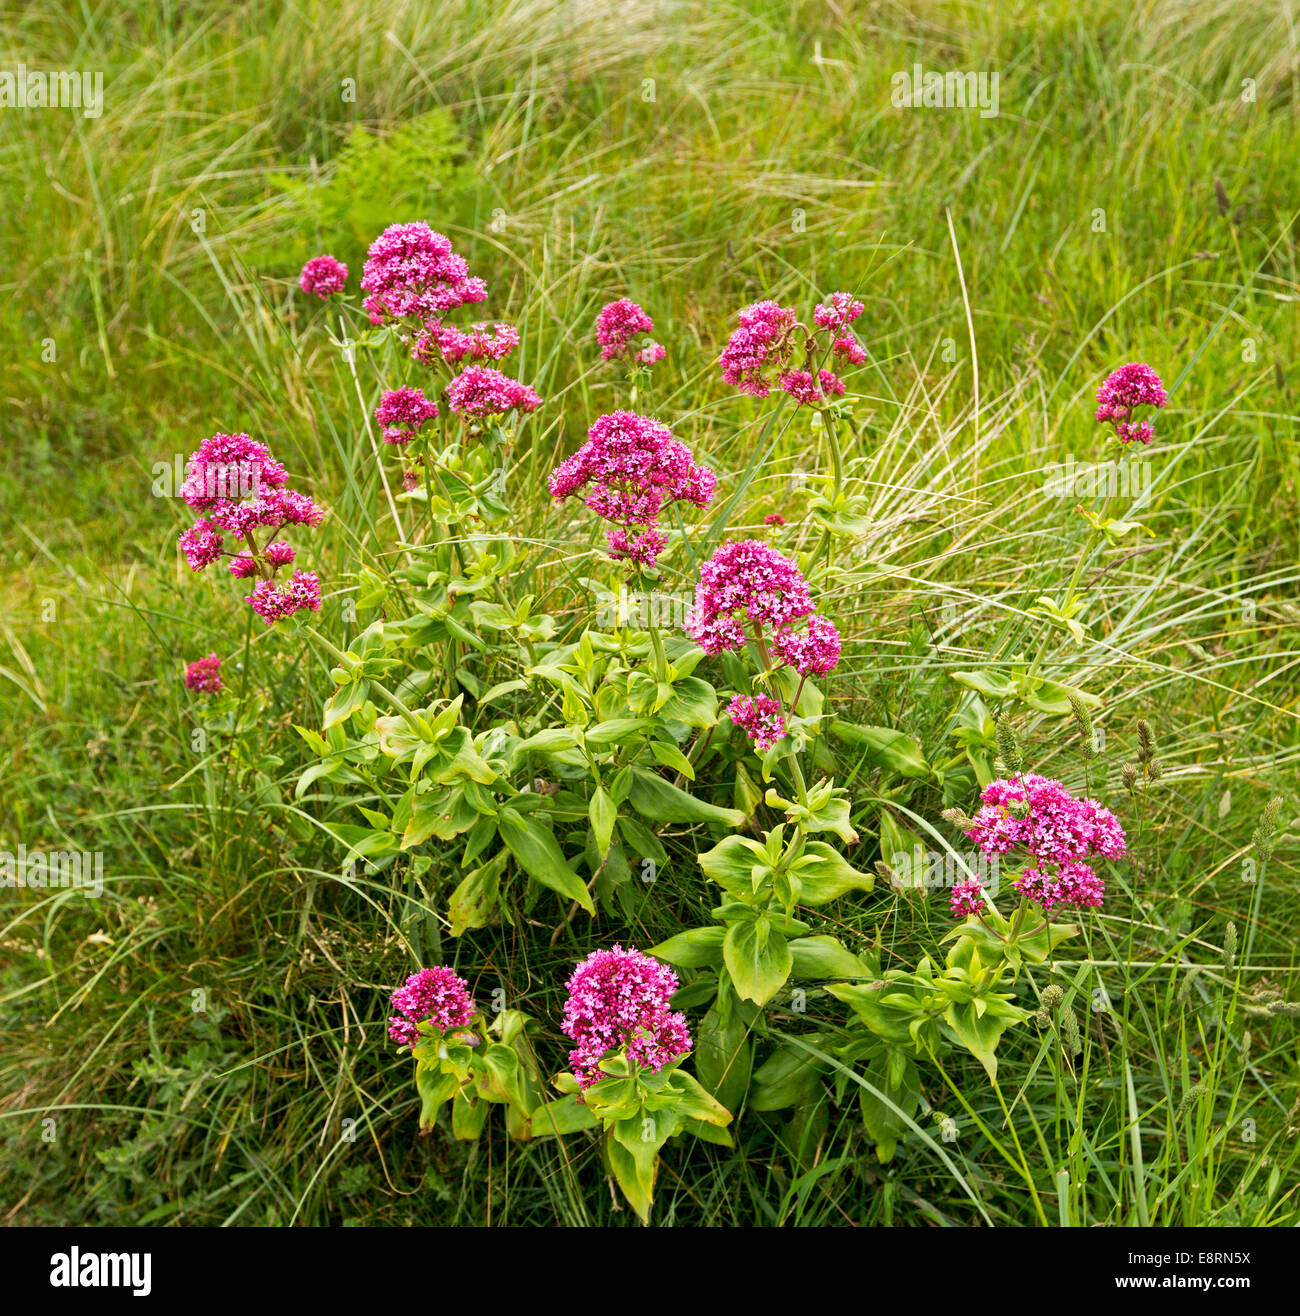 Bright red pink wildflowers centranthus ruber valerian growing bright red pink wildflowers centranthus ruber valerian growing among grass on sand dunes beside beach at port eynon wales mightylinksfo